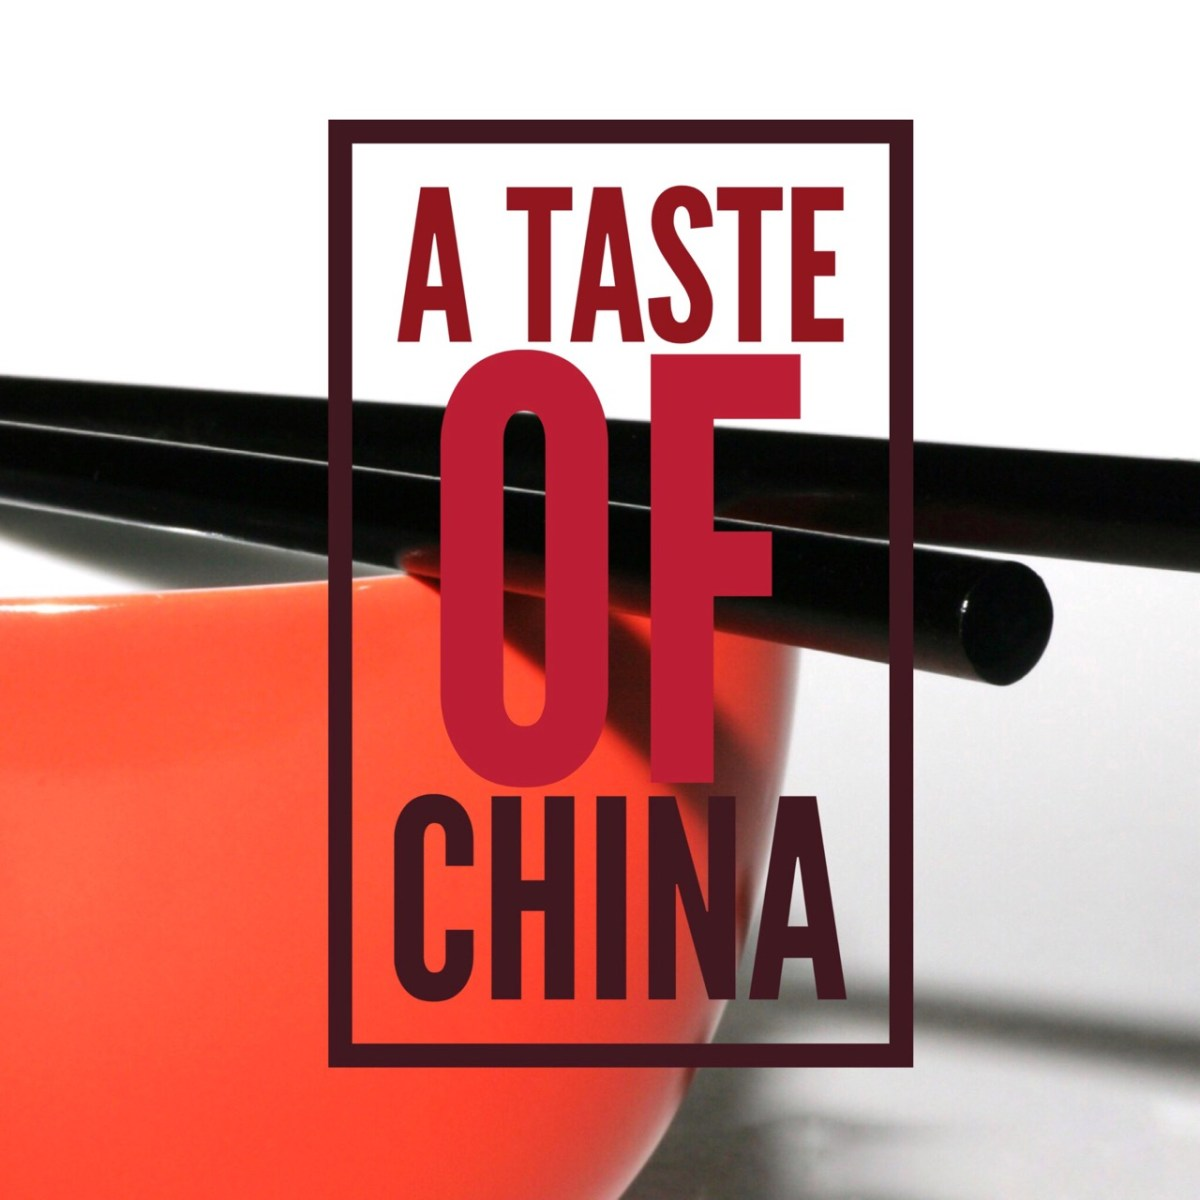 What not to eat in China